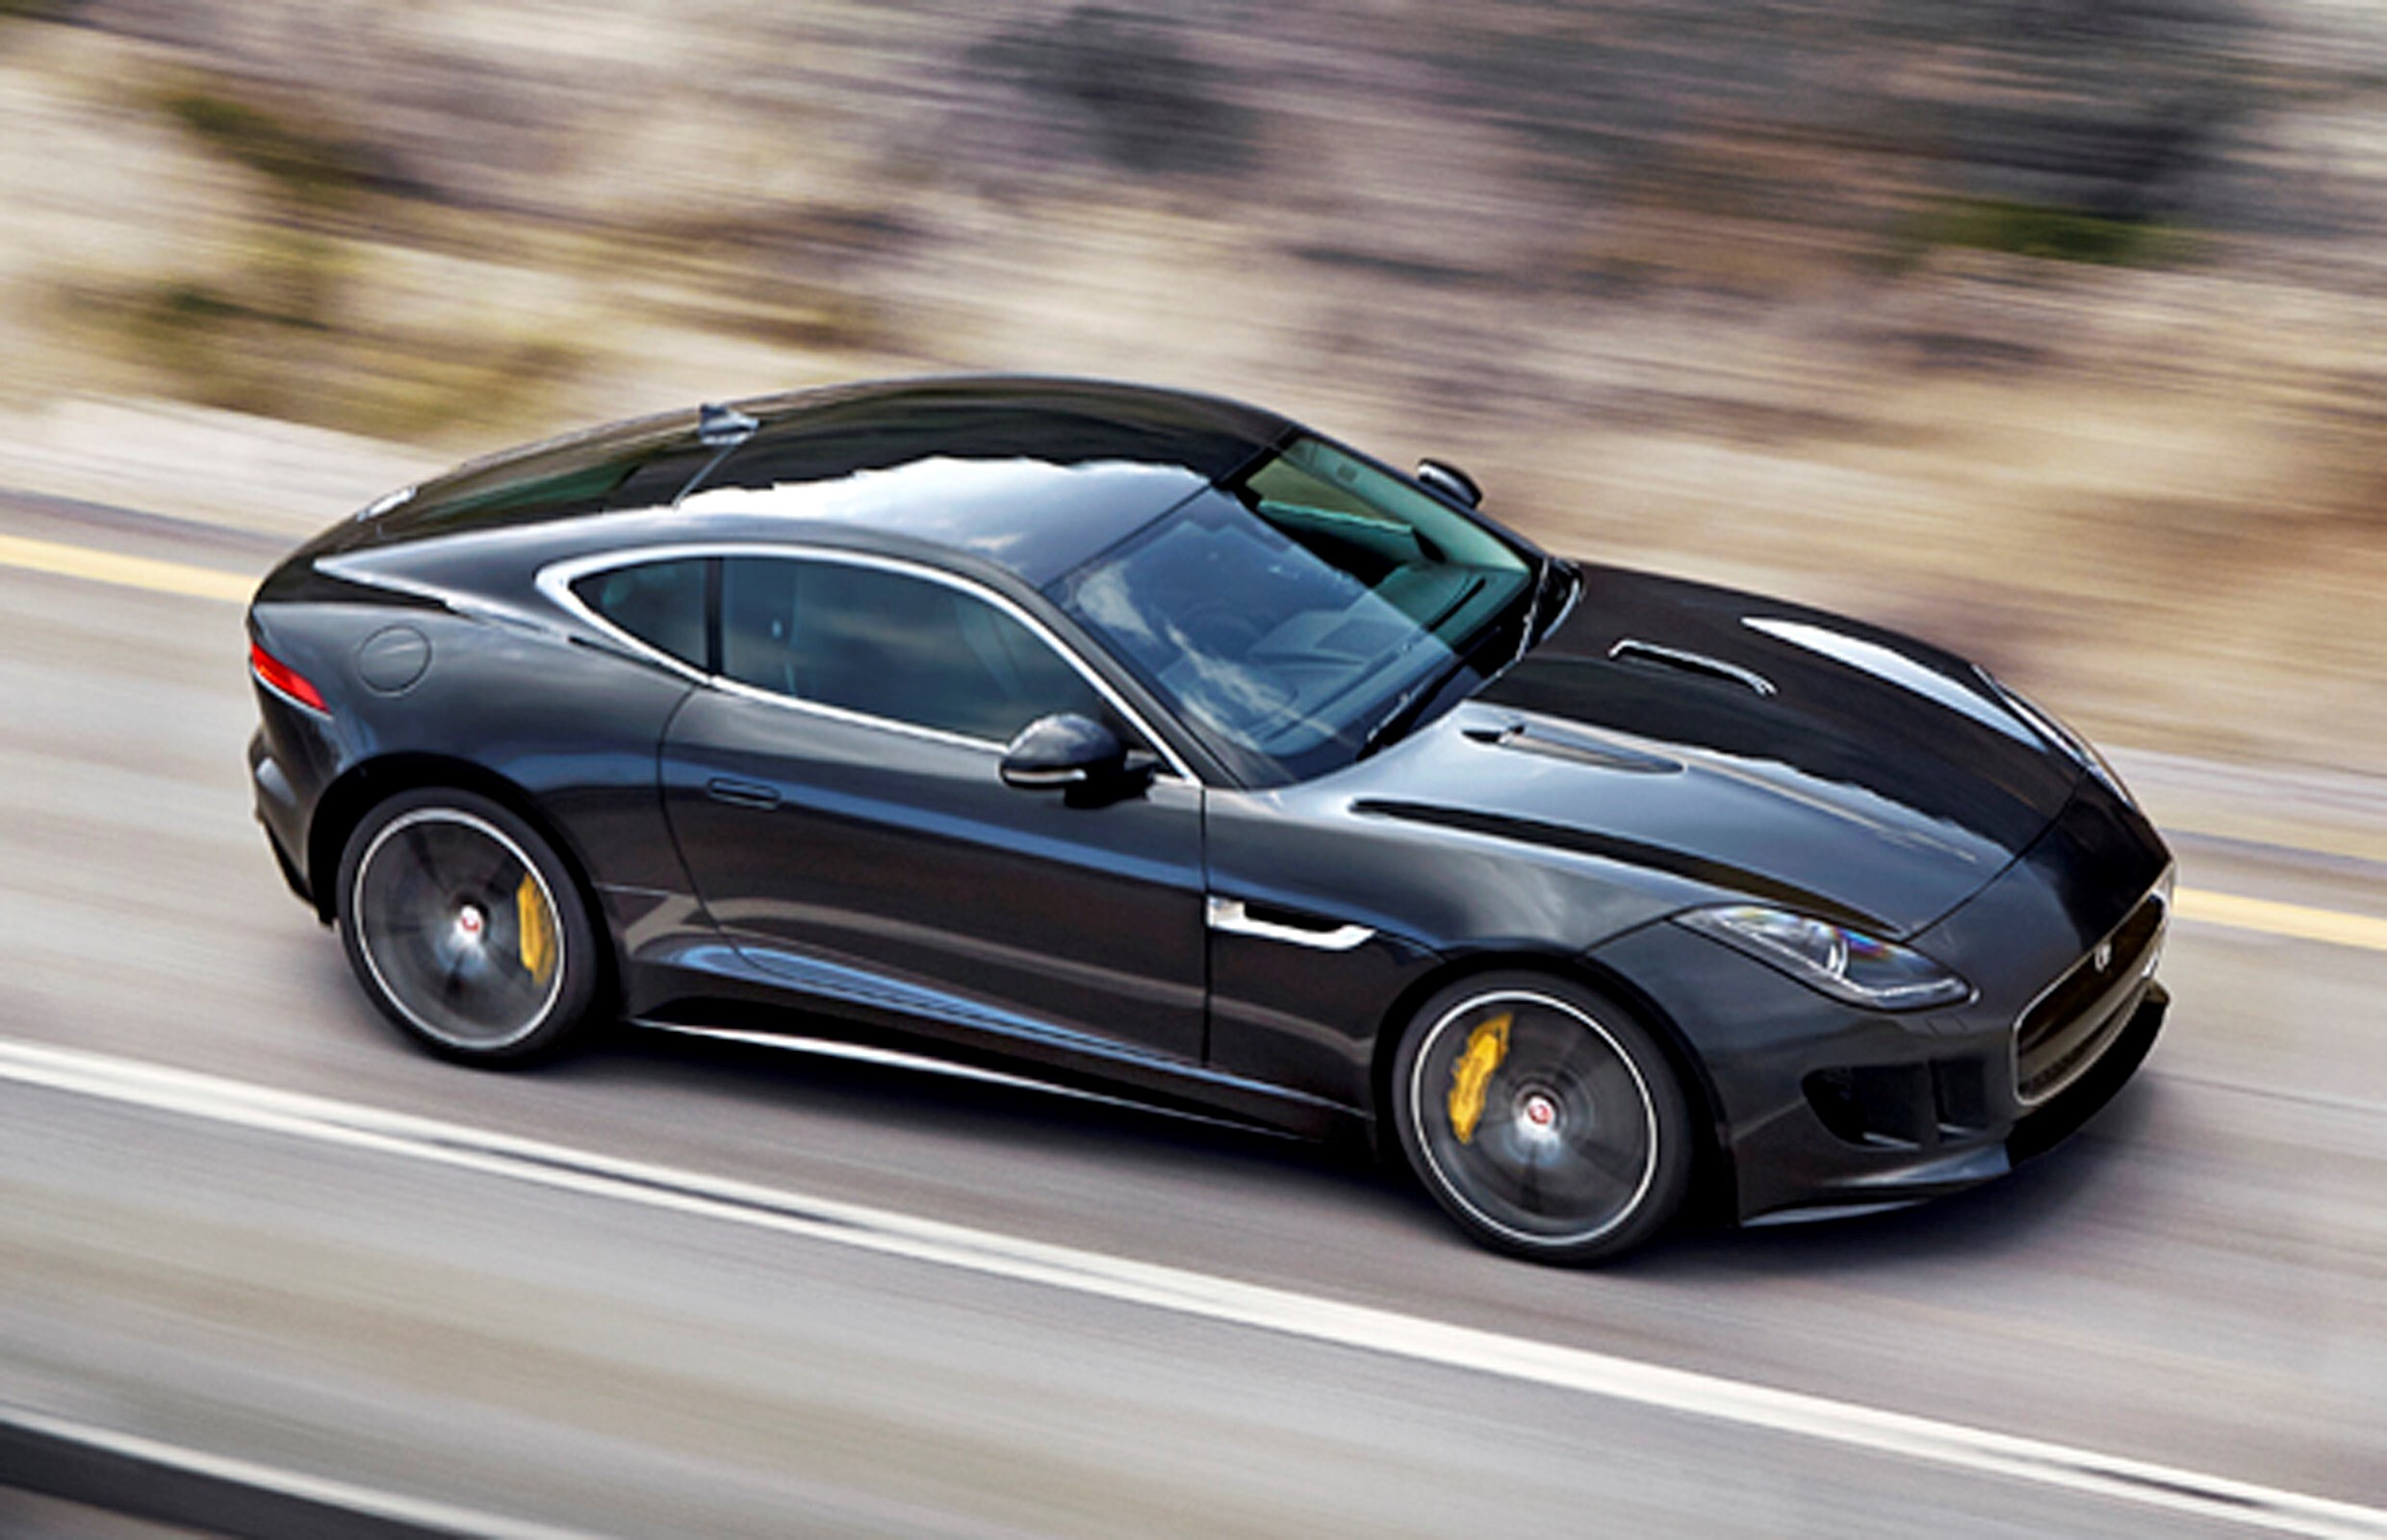 Latest Super 2013 Jaguar Xkr S Black Luxury Car On Road Wallpapers